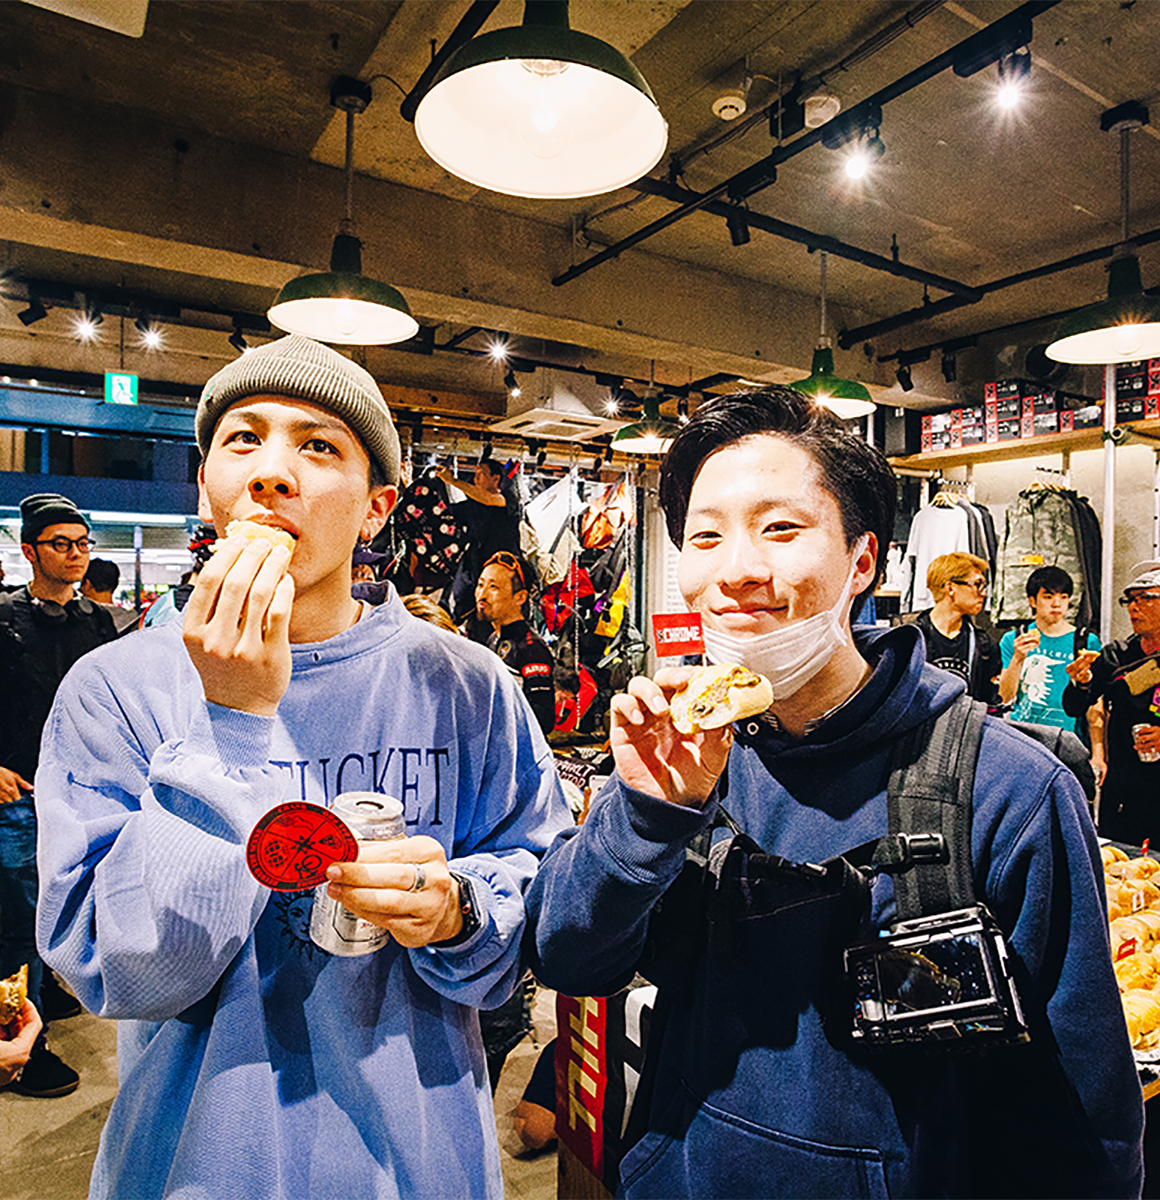 Chrome_boys_eating